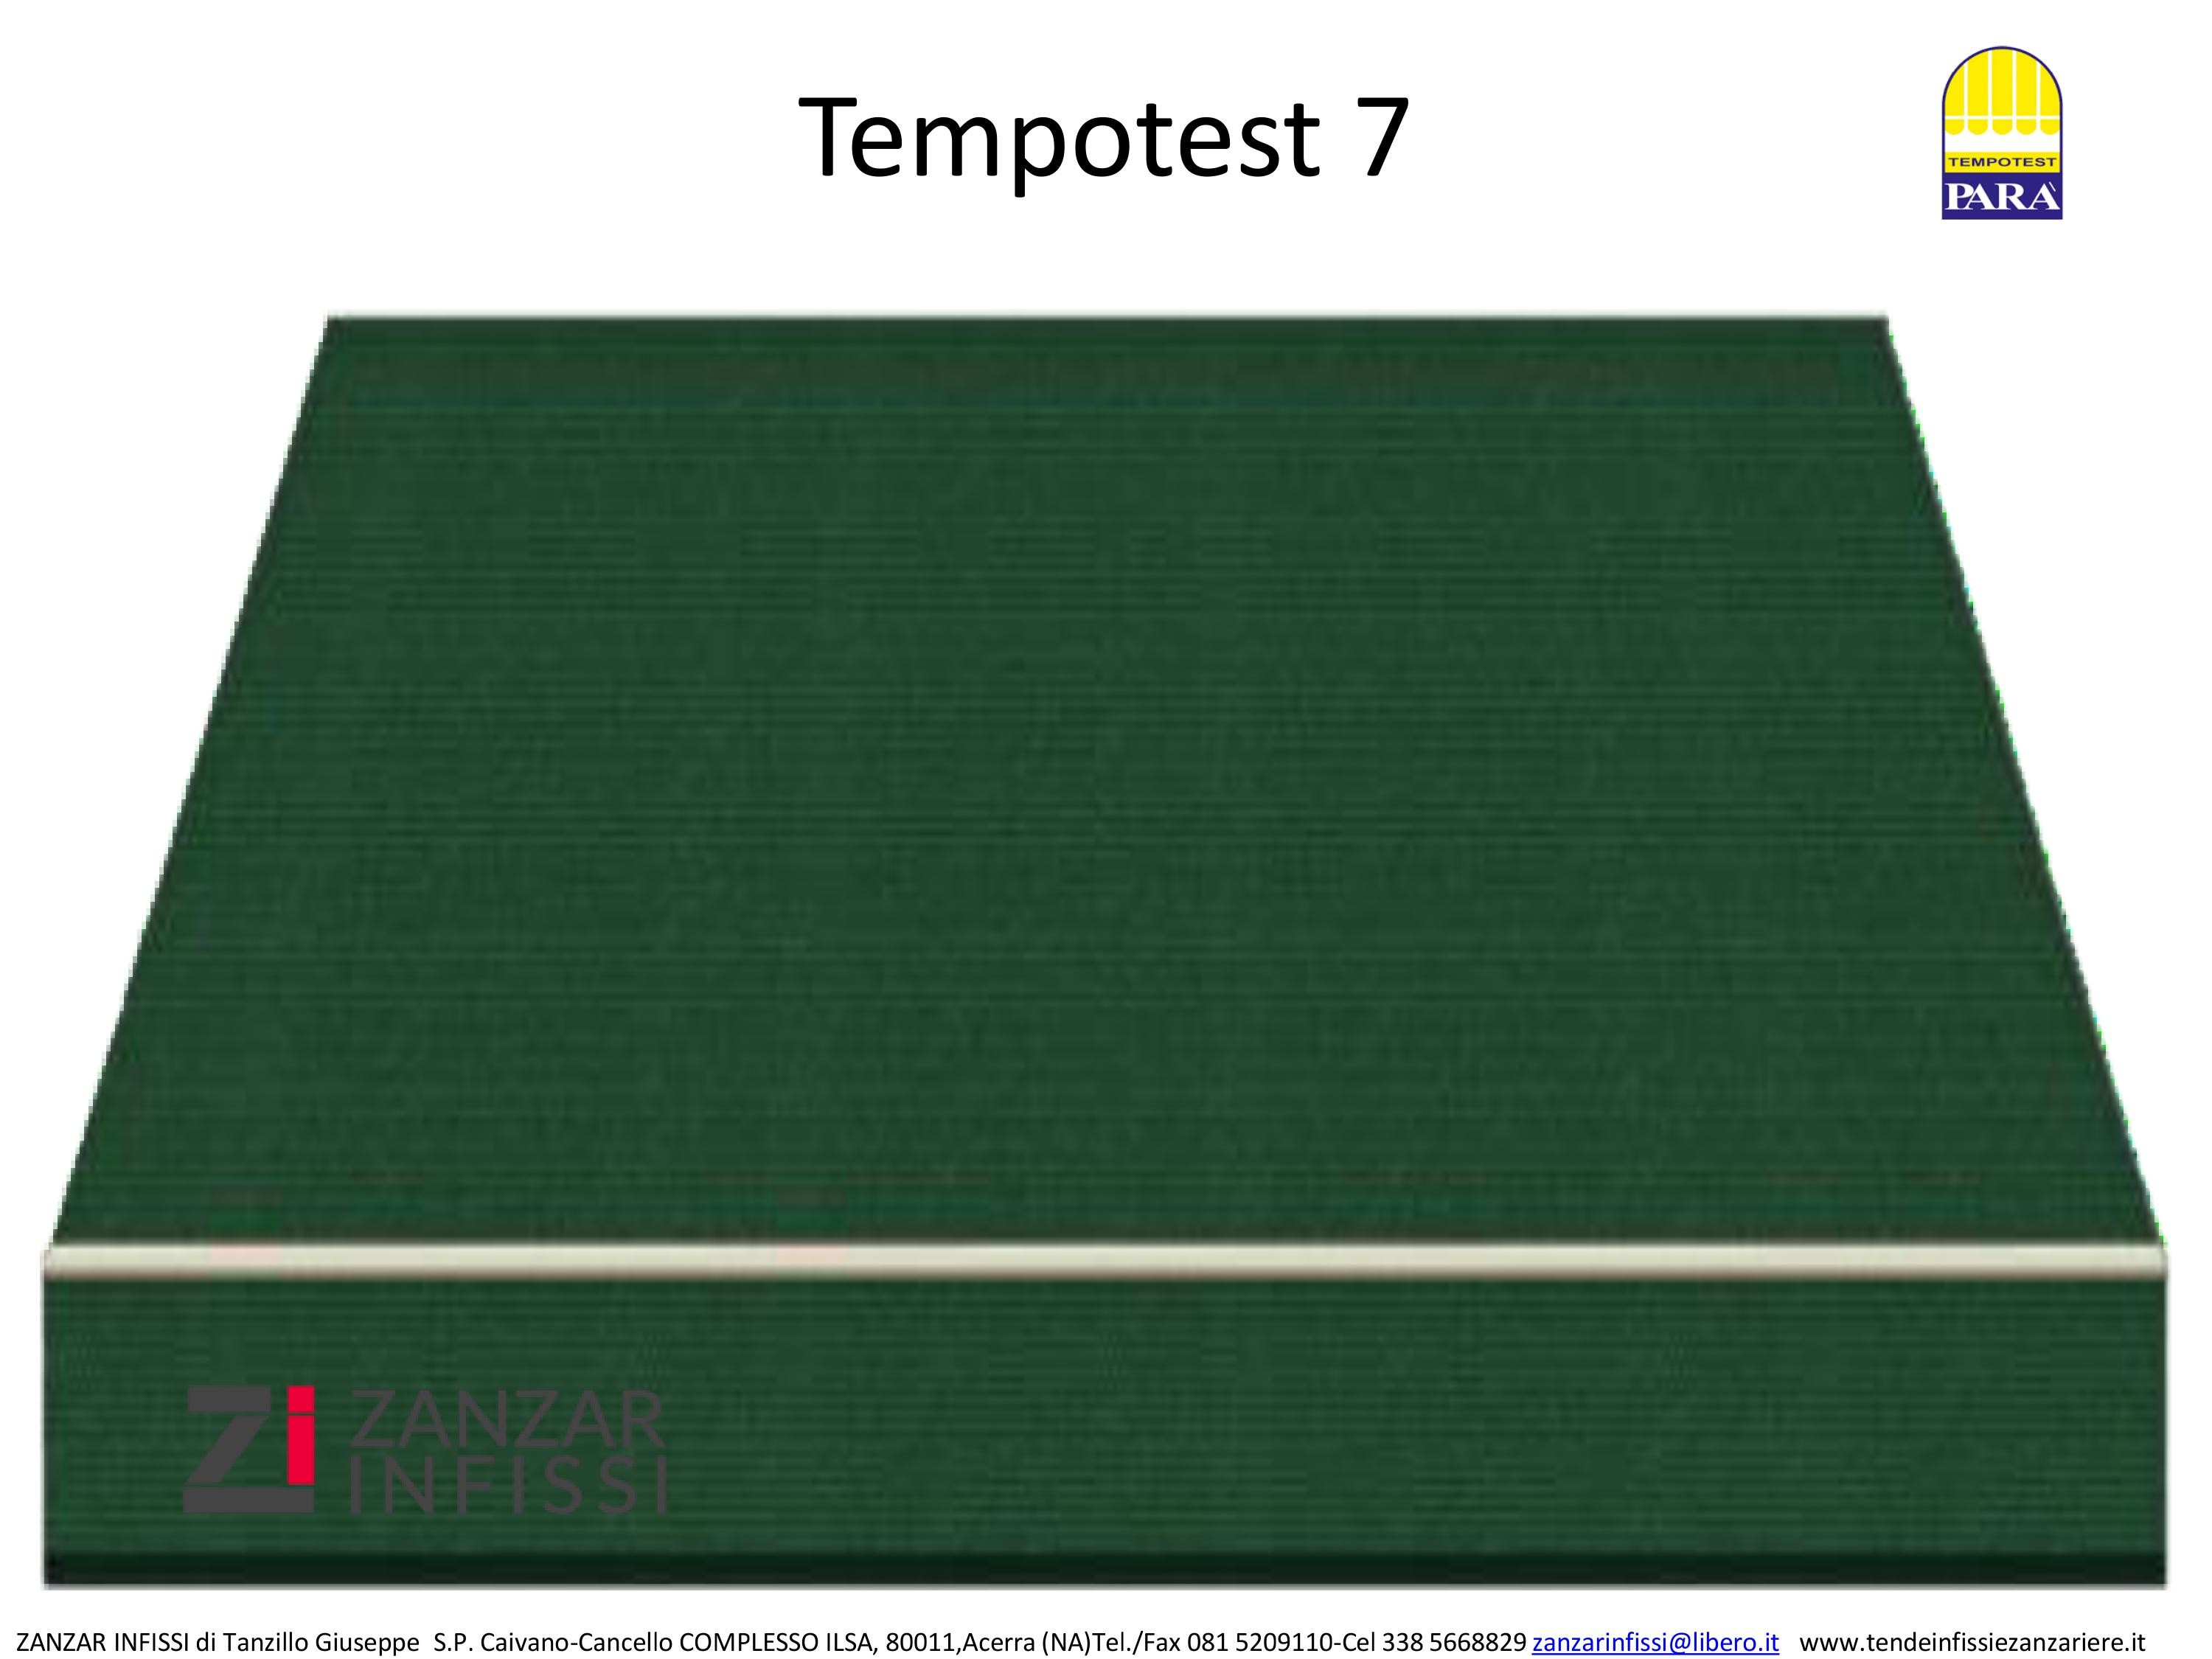 Tempotest 7